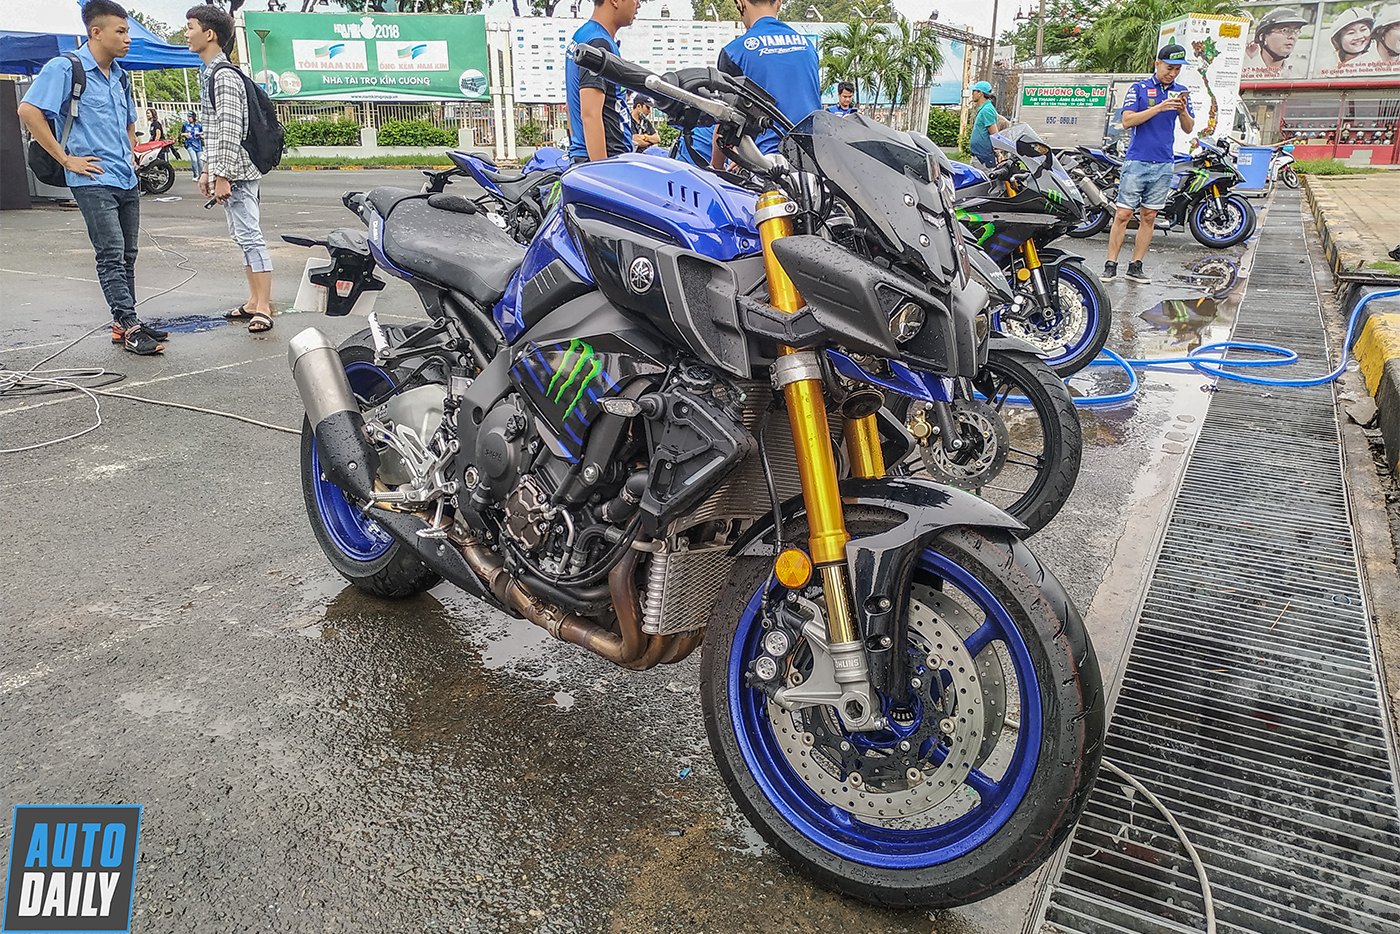 yamaha-monster-energy-8.jpg